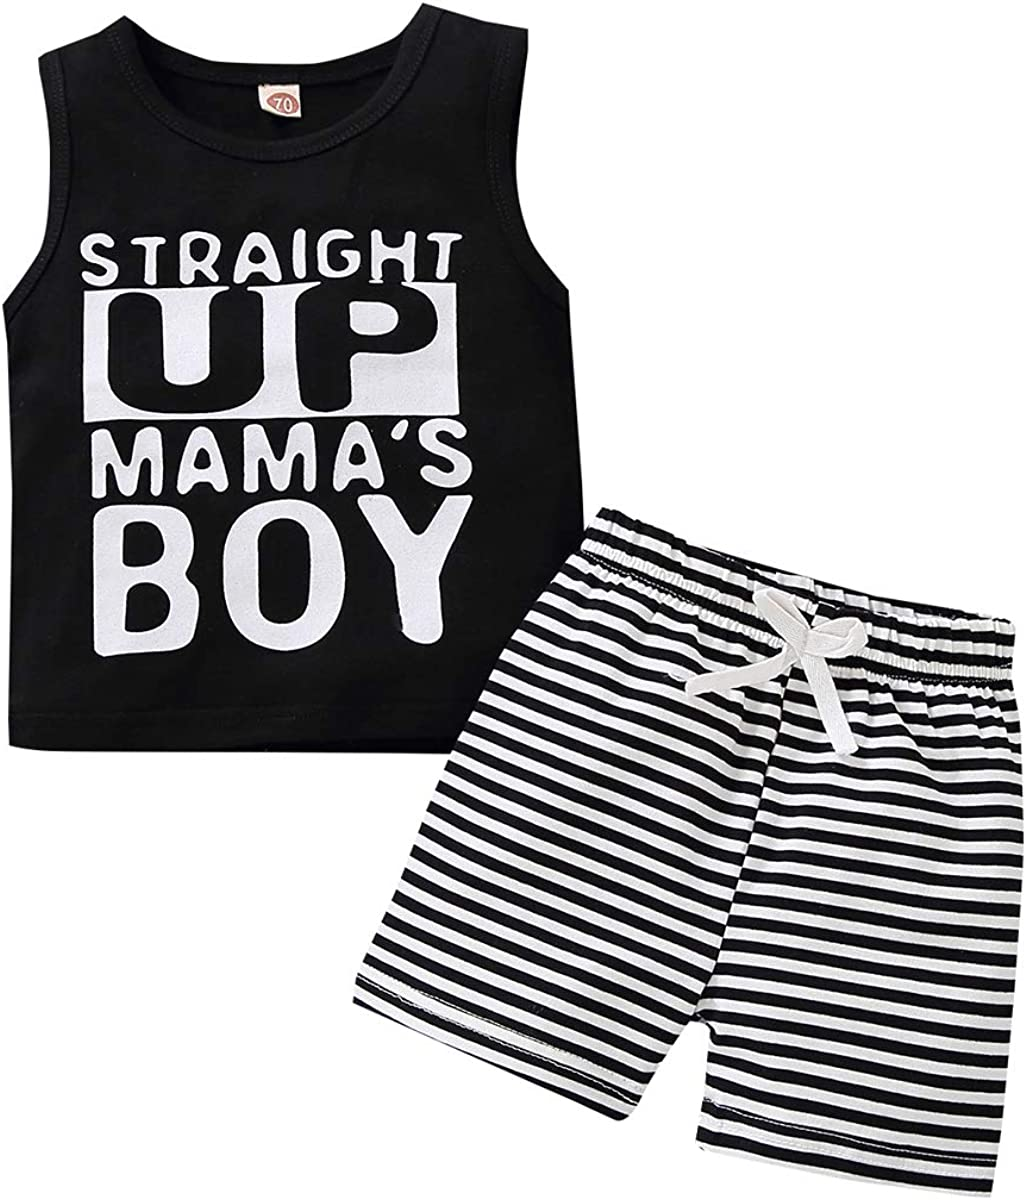 Toddler Kid Baby Boy Summer Outfit Straight Up Mama's Boy Vest Top Casual Shorts Clothes Set